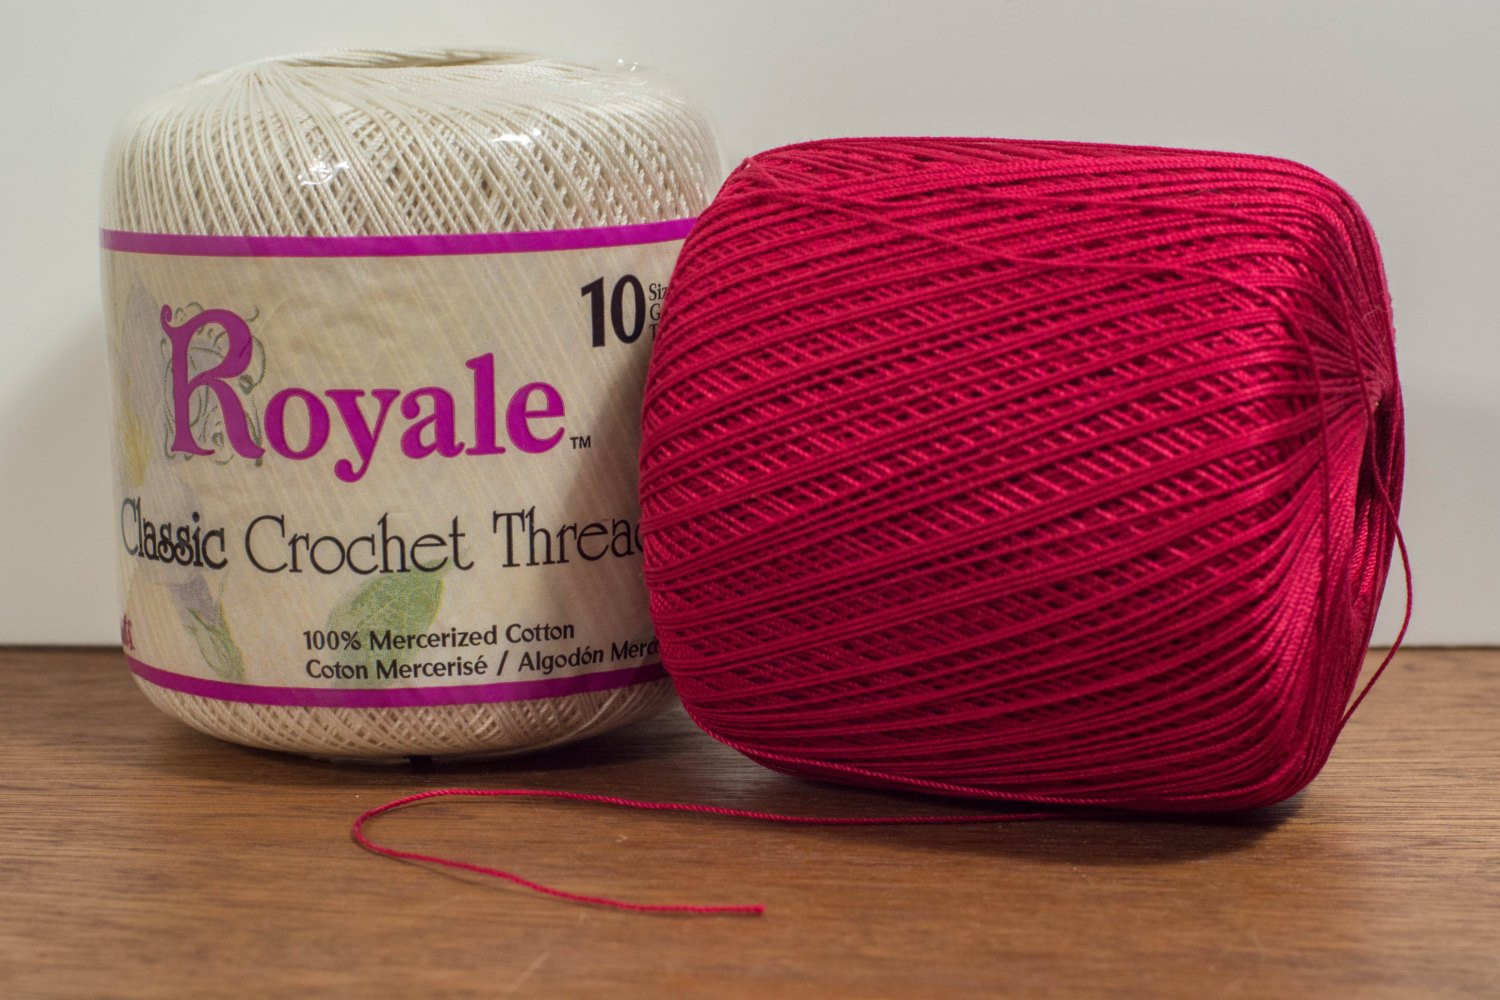 Size 10 Crochet Thread Unique J & P Coats Royale Cotton Crochet Thread Size 10 Two Colors Of Luxury 49 Models Size 10 Crochet Thread